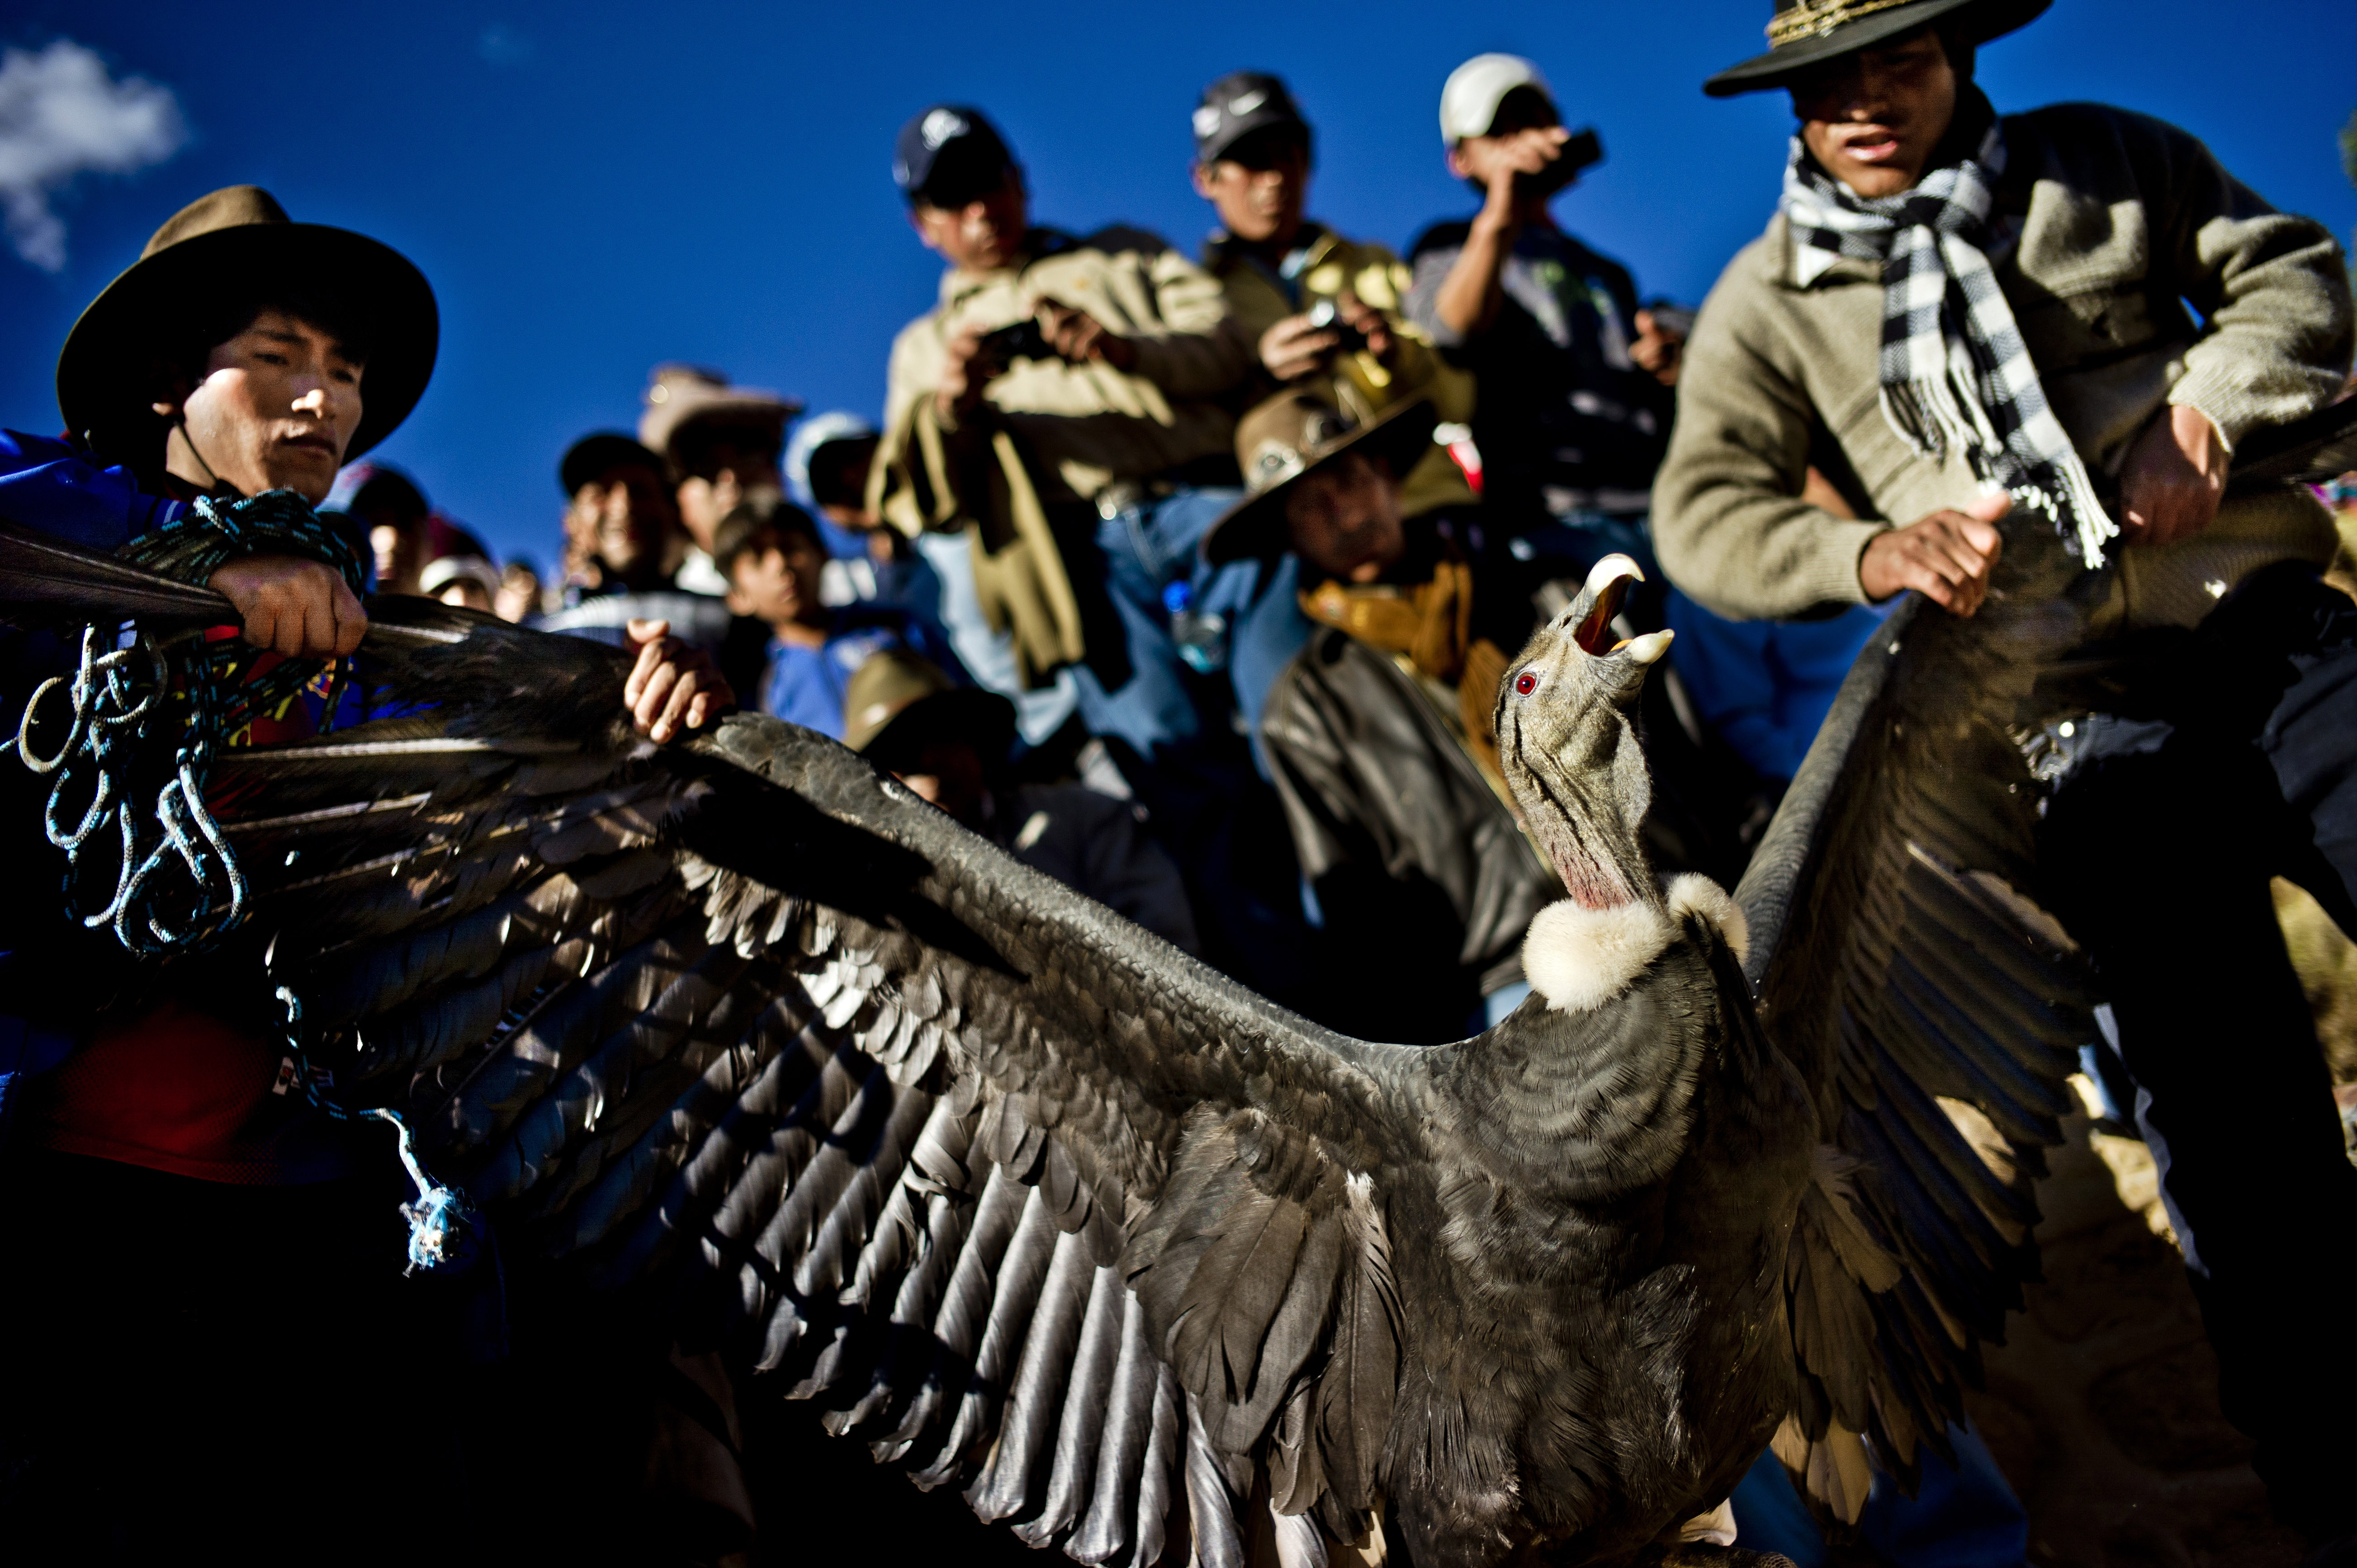 Condors, like this one seen in its native Peru, have a wingspan greater than 9 feet and razor-sharp beaks.